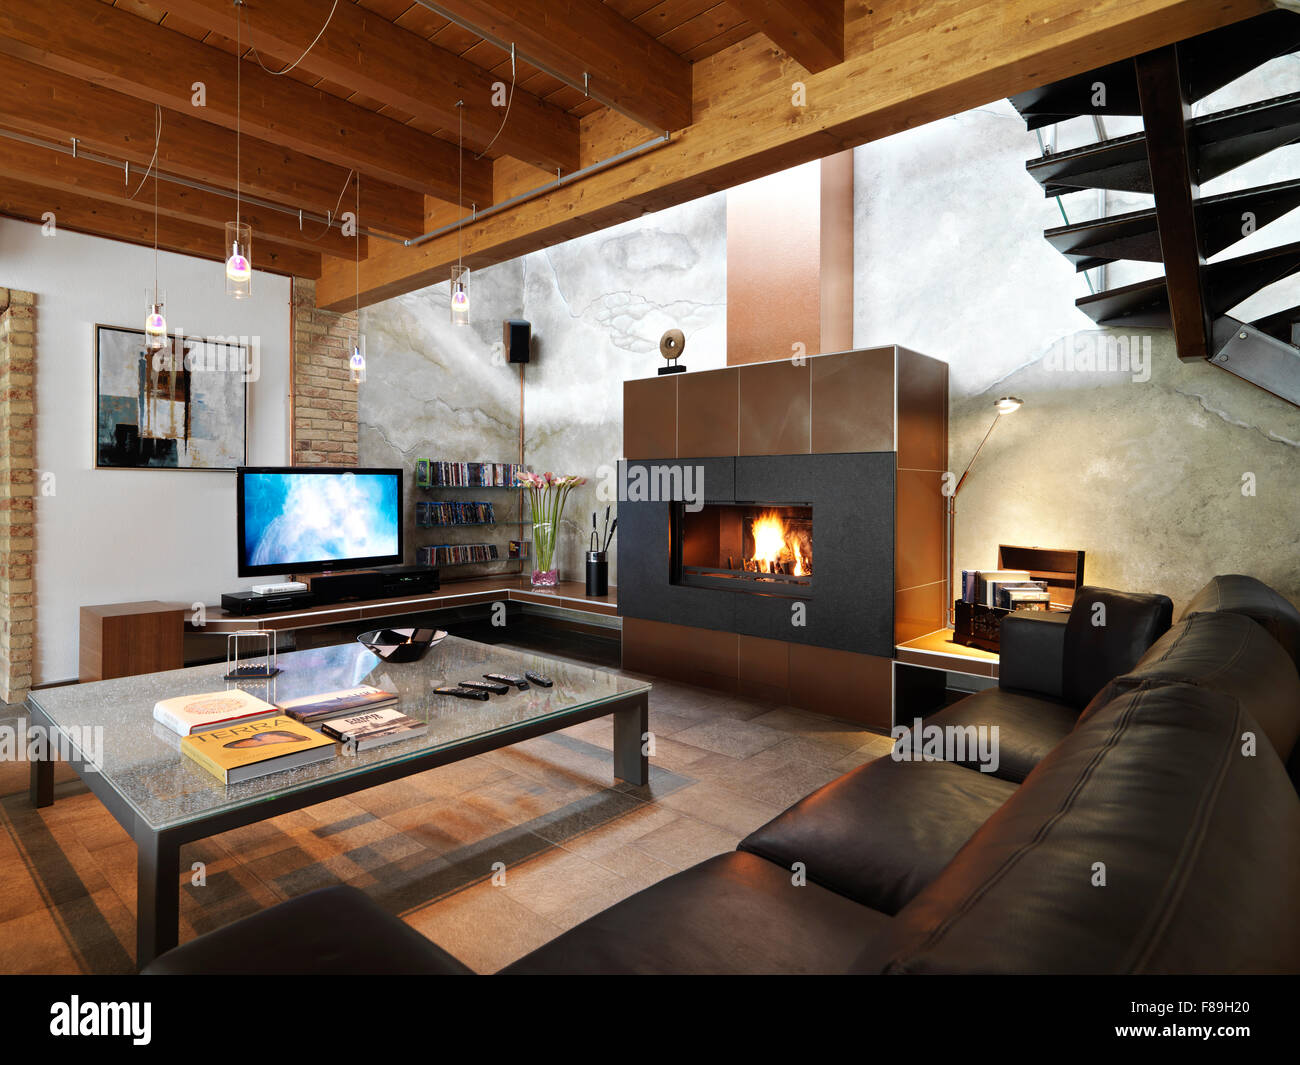 modern fireplace and leather sofa in the modern living room - Stock Image